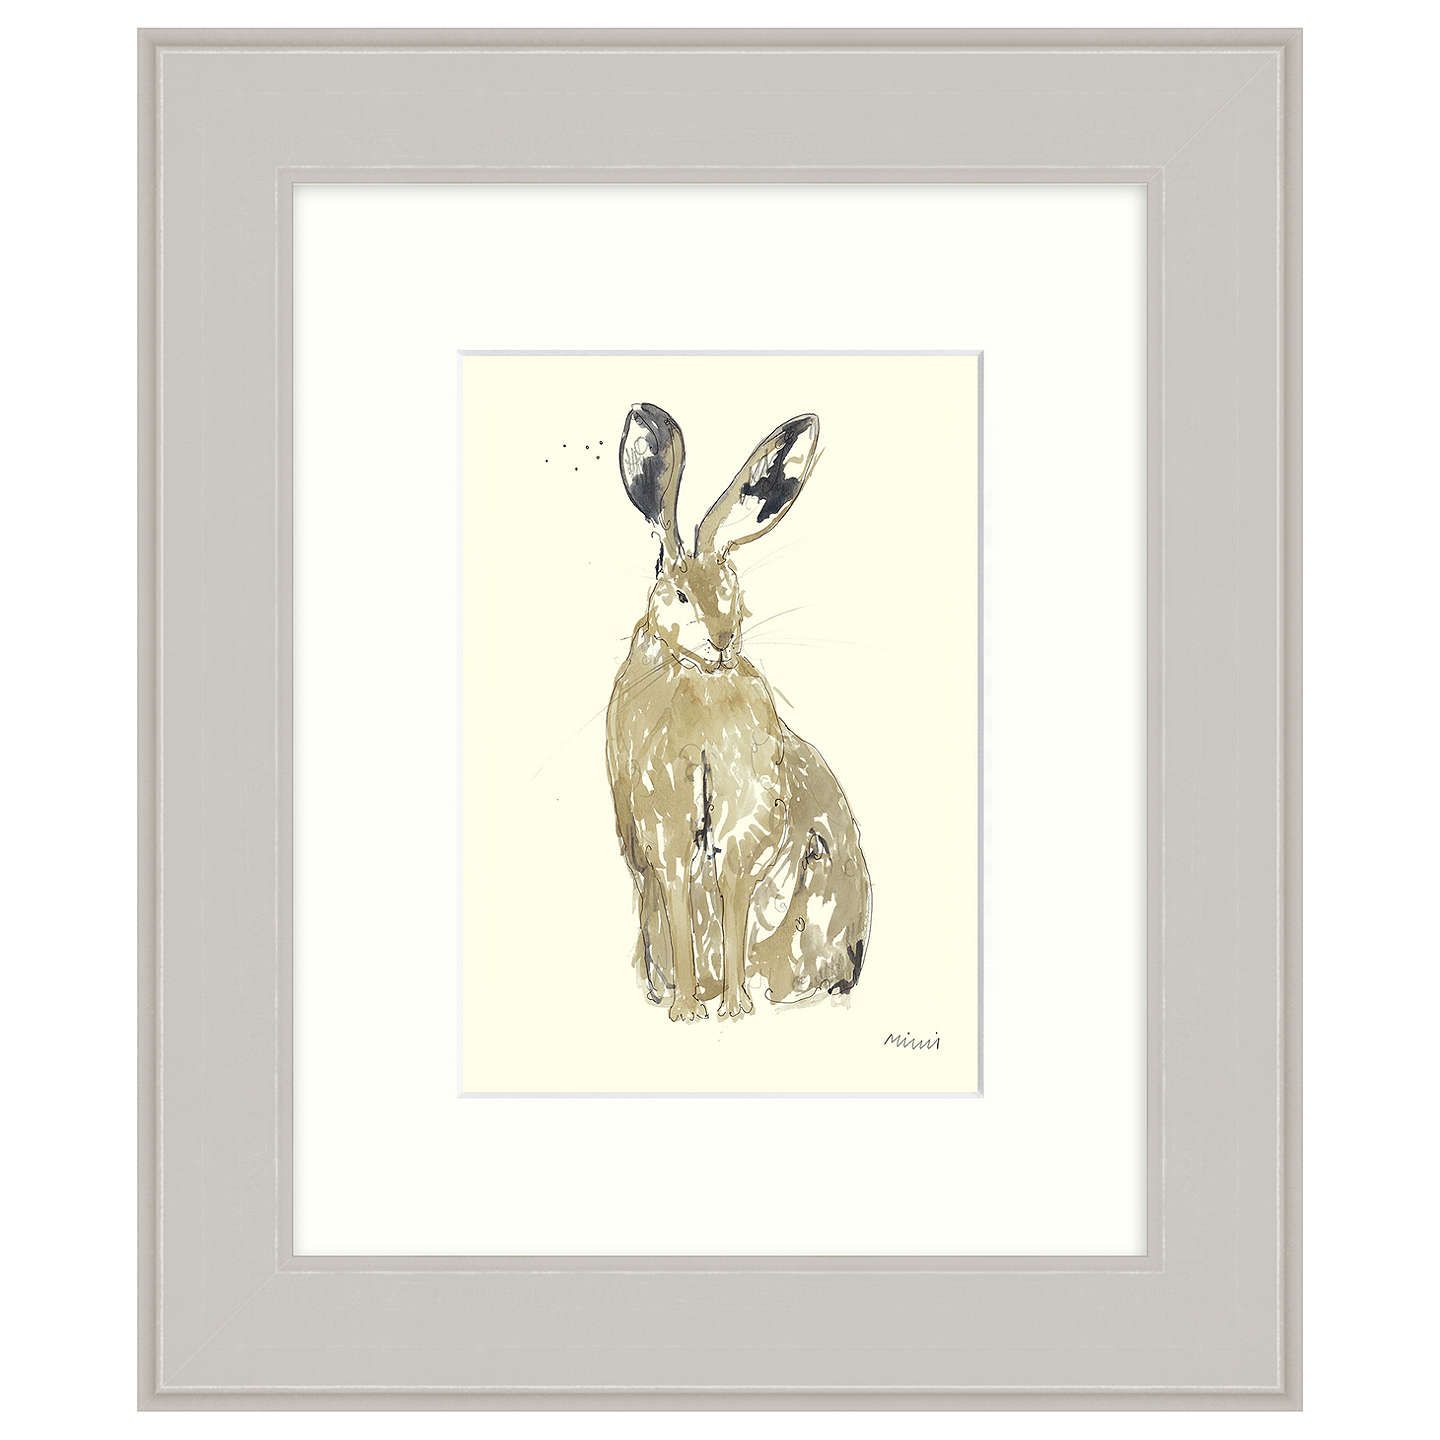 BuyMimi Emmet - Thinking Hare Framed Print, 31 x 37cm Online at johnlewis.com